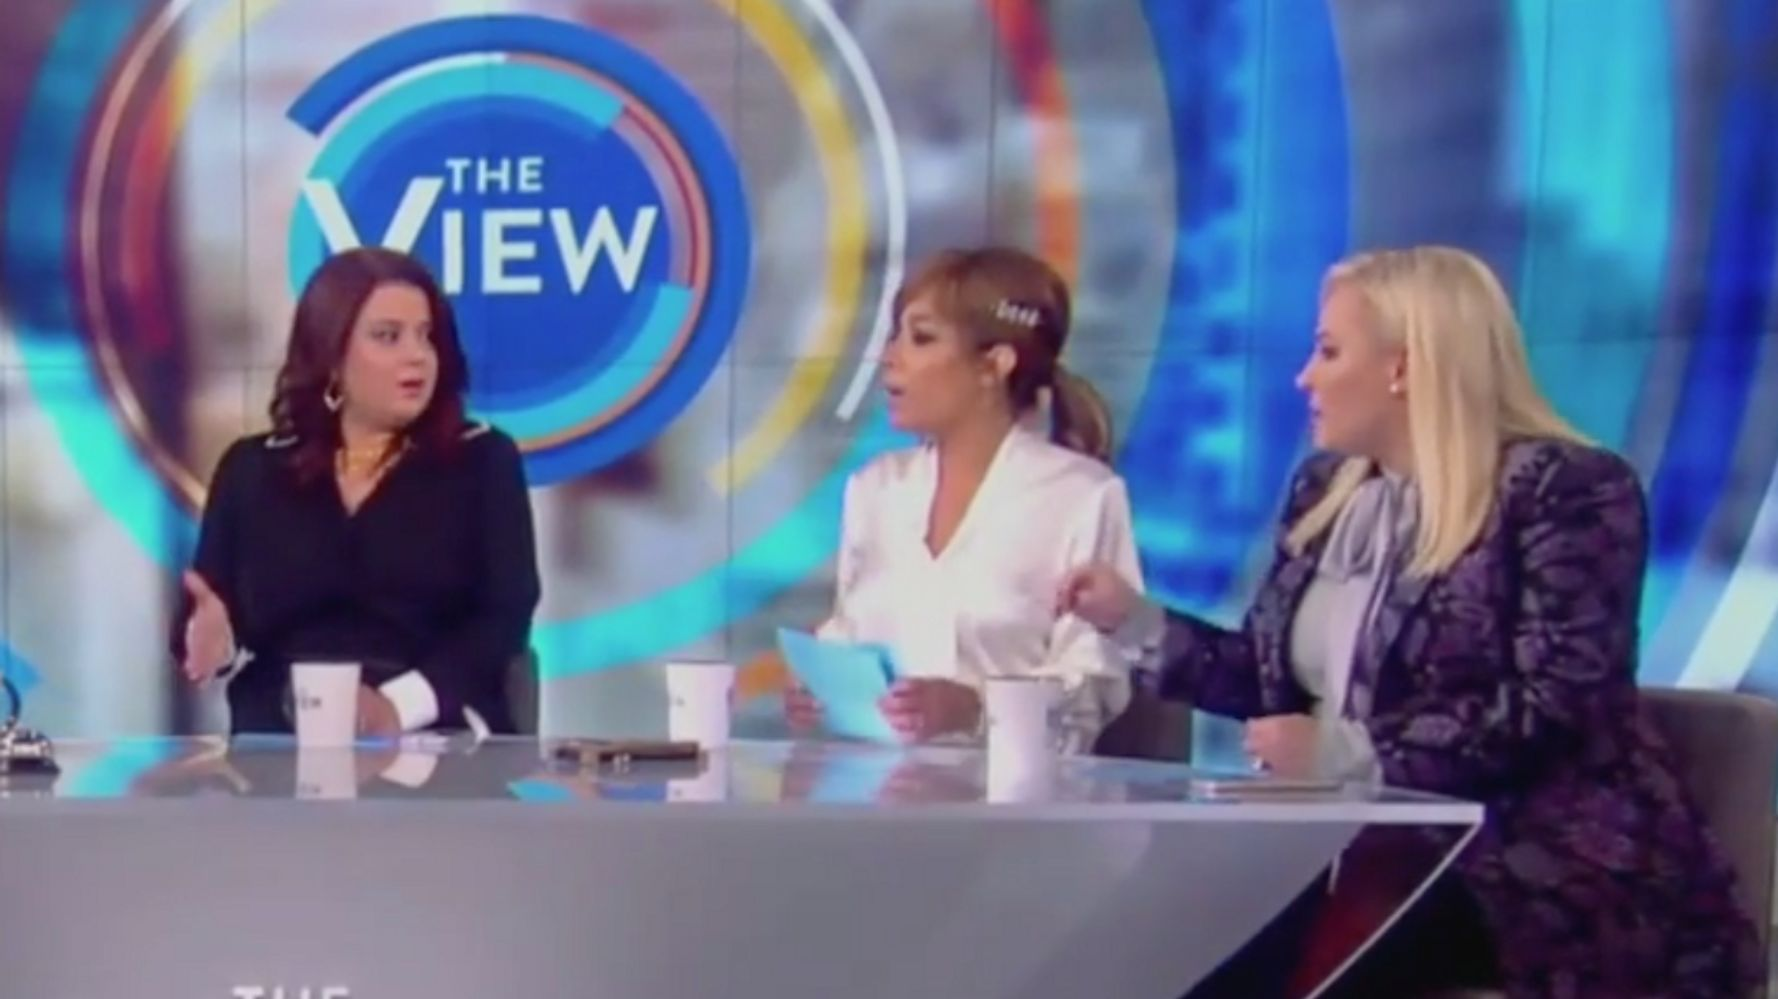 Westlake Legal Group 5d8500c92300005700d00f56 Meghan McCain Walks Off 'The View' Set After Clash With Ana Navarro